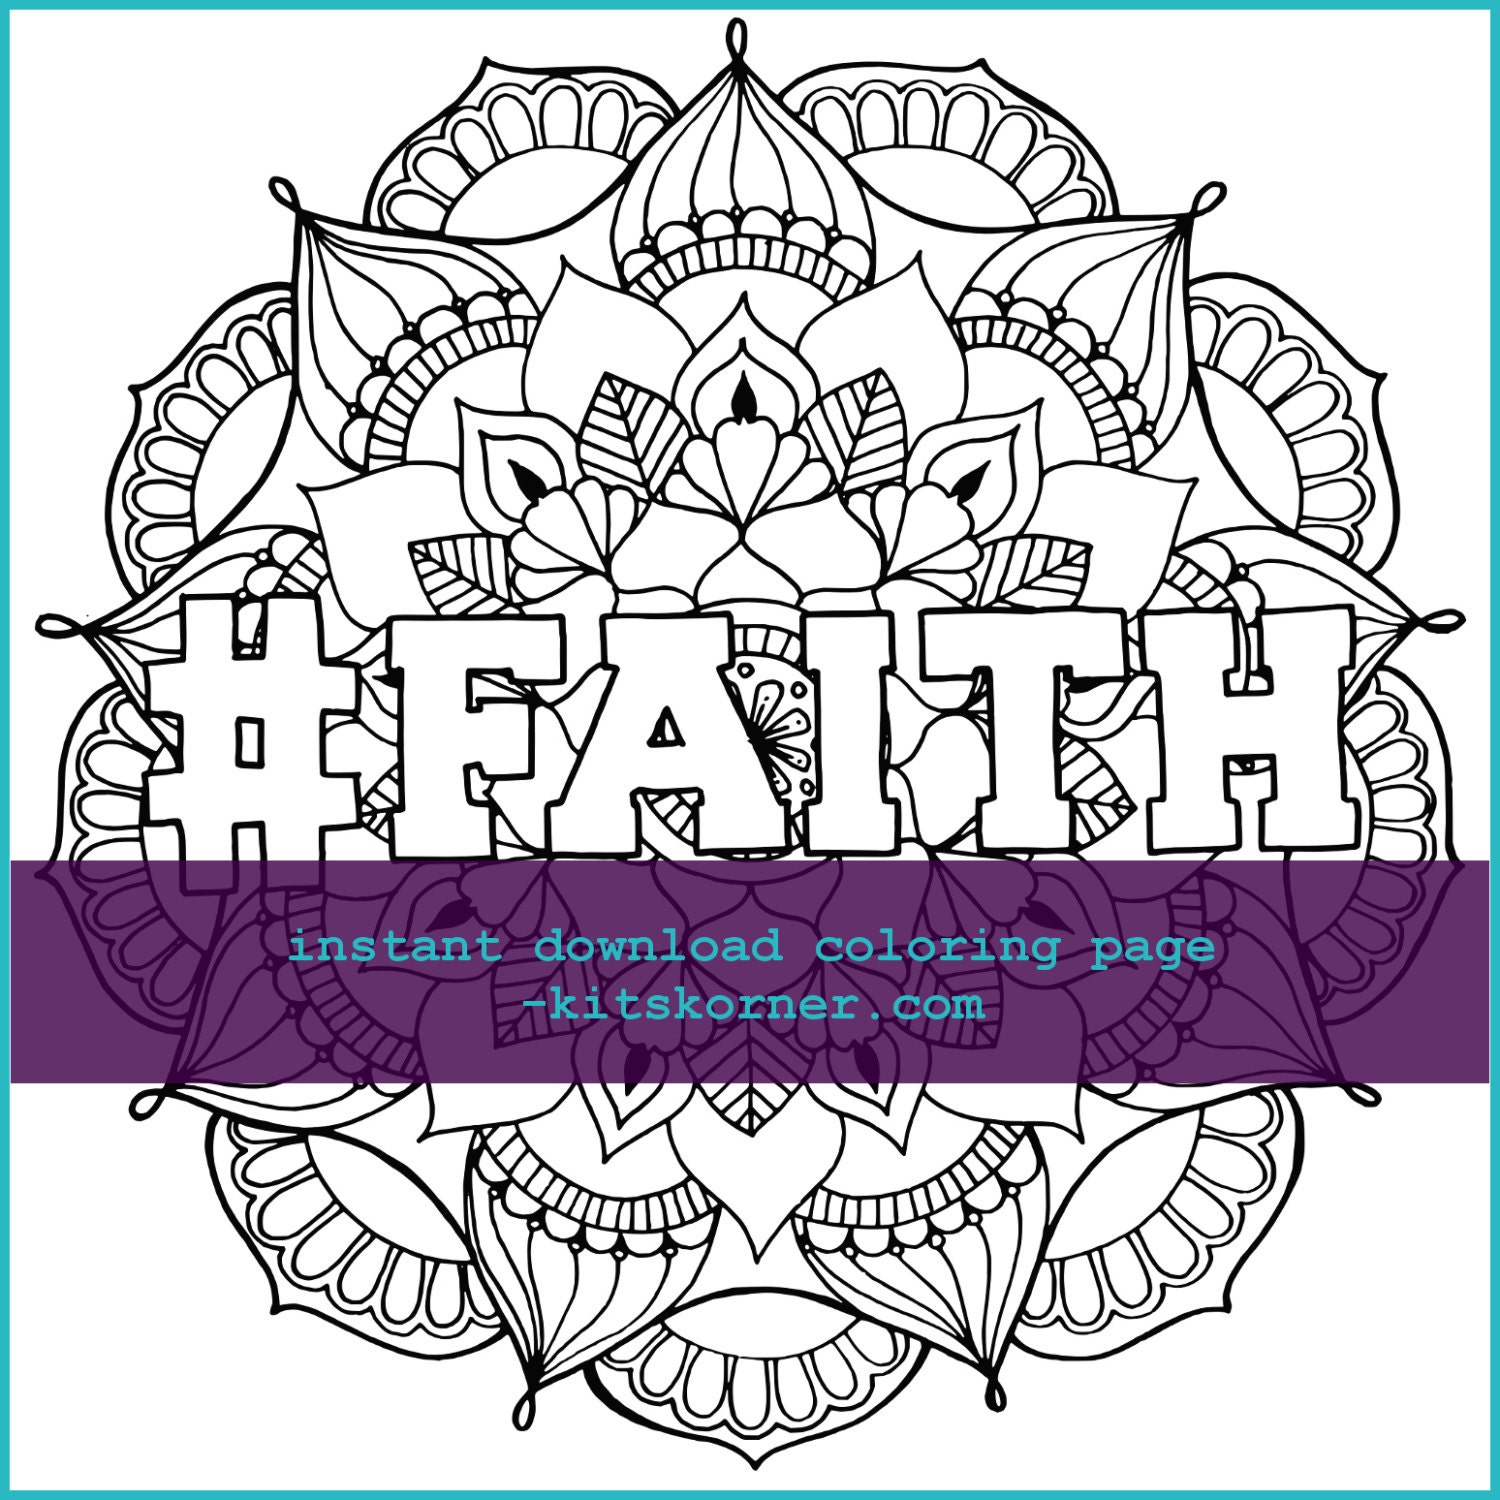 faith coloring pages - mandala faith coloring page instant download